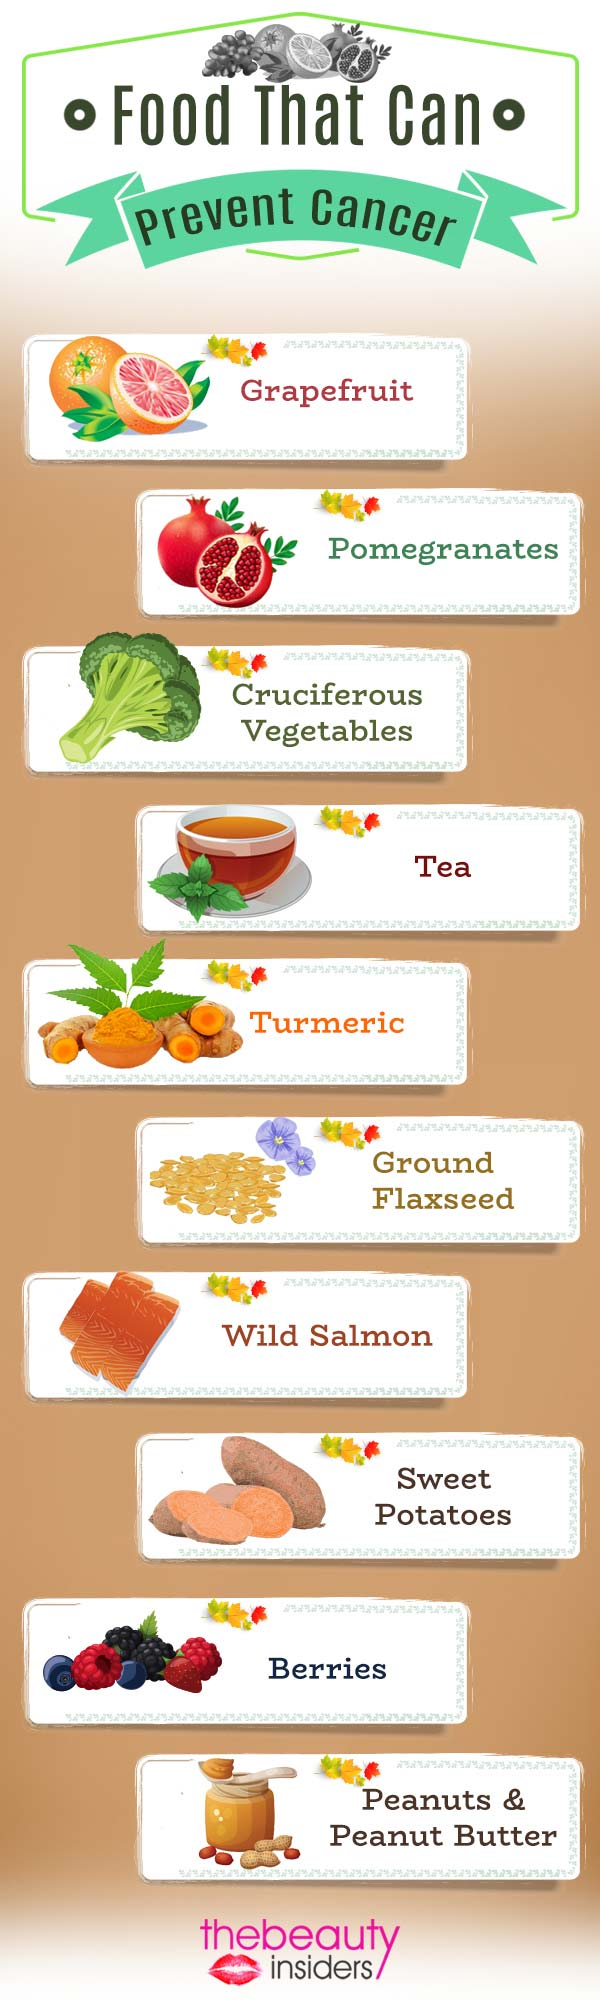 Food That Can Prevent Cancer